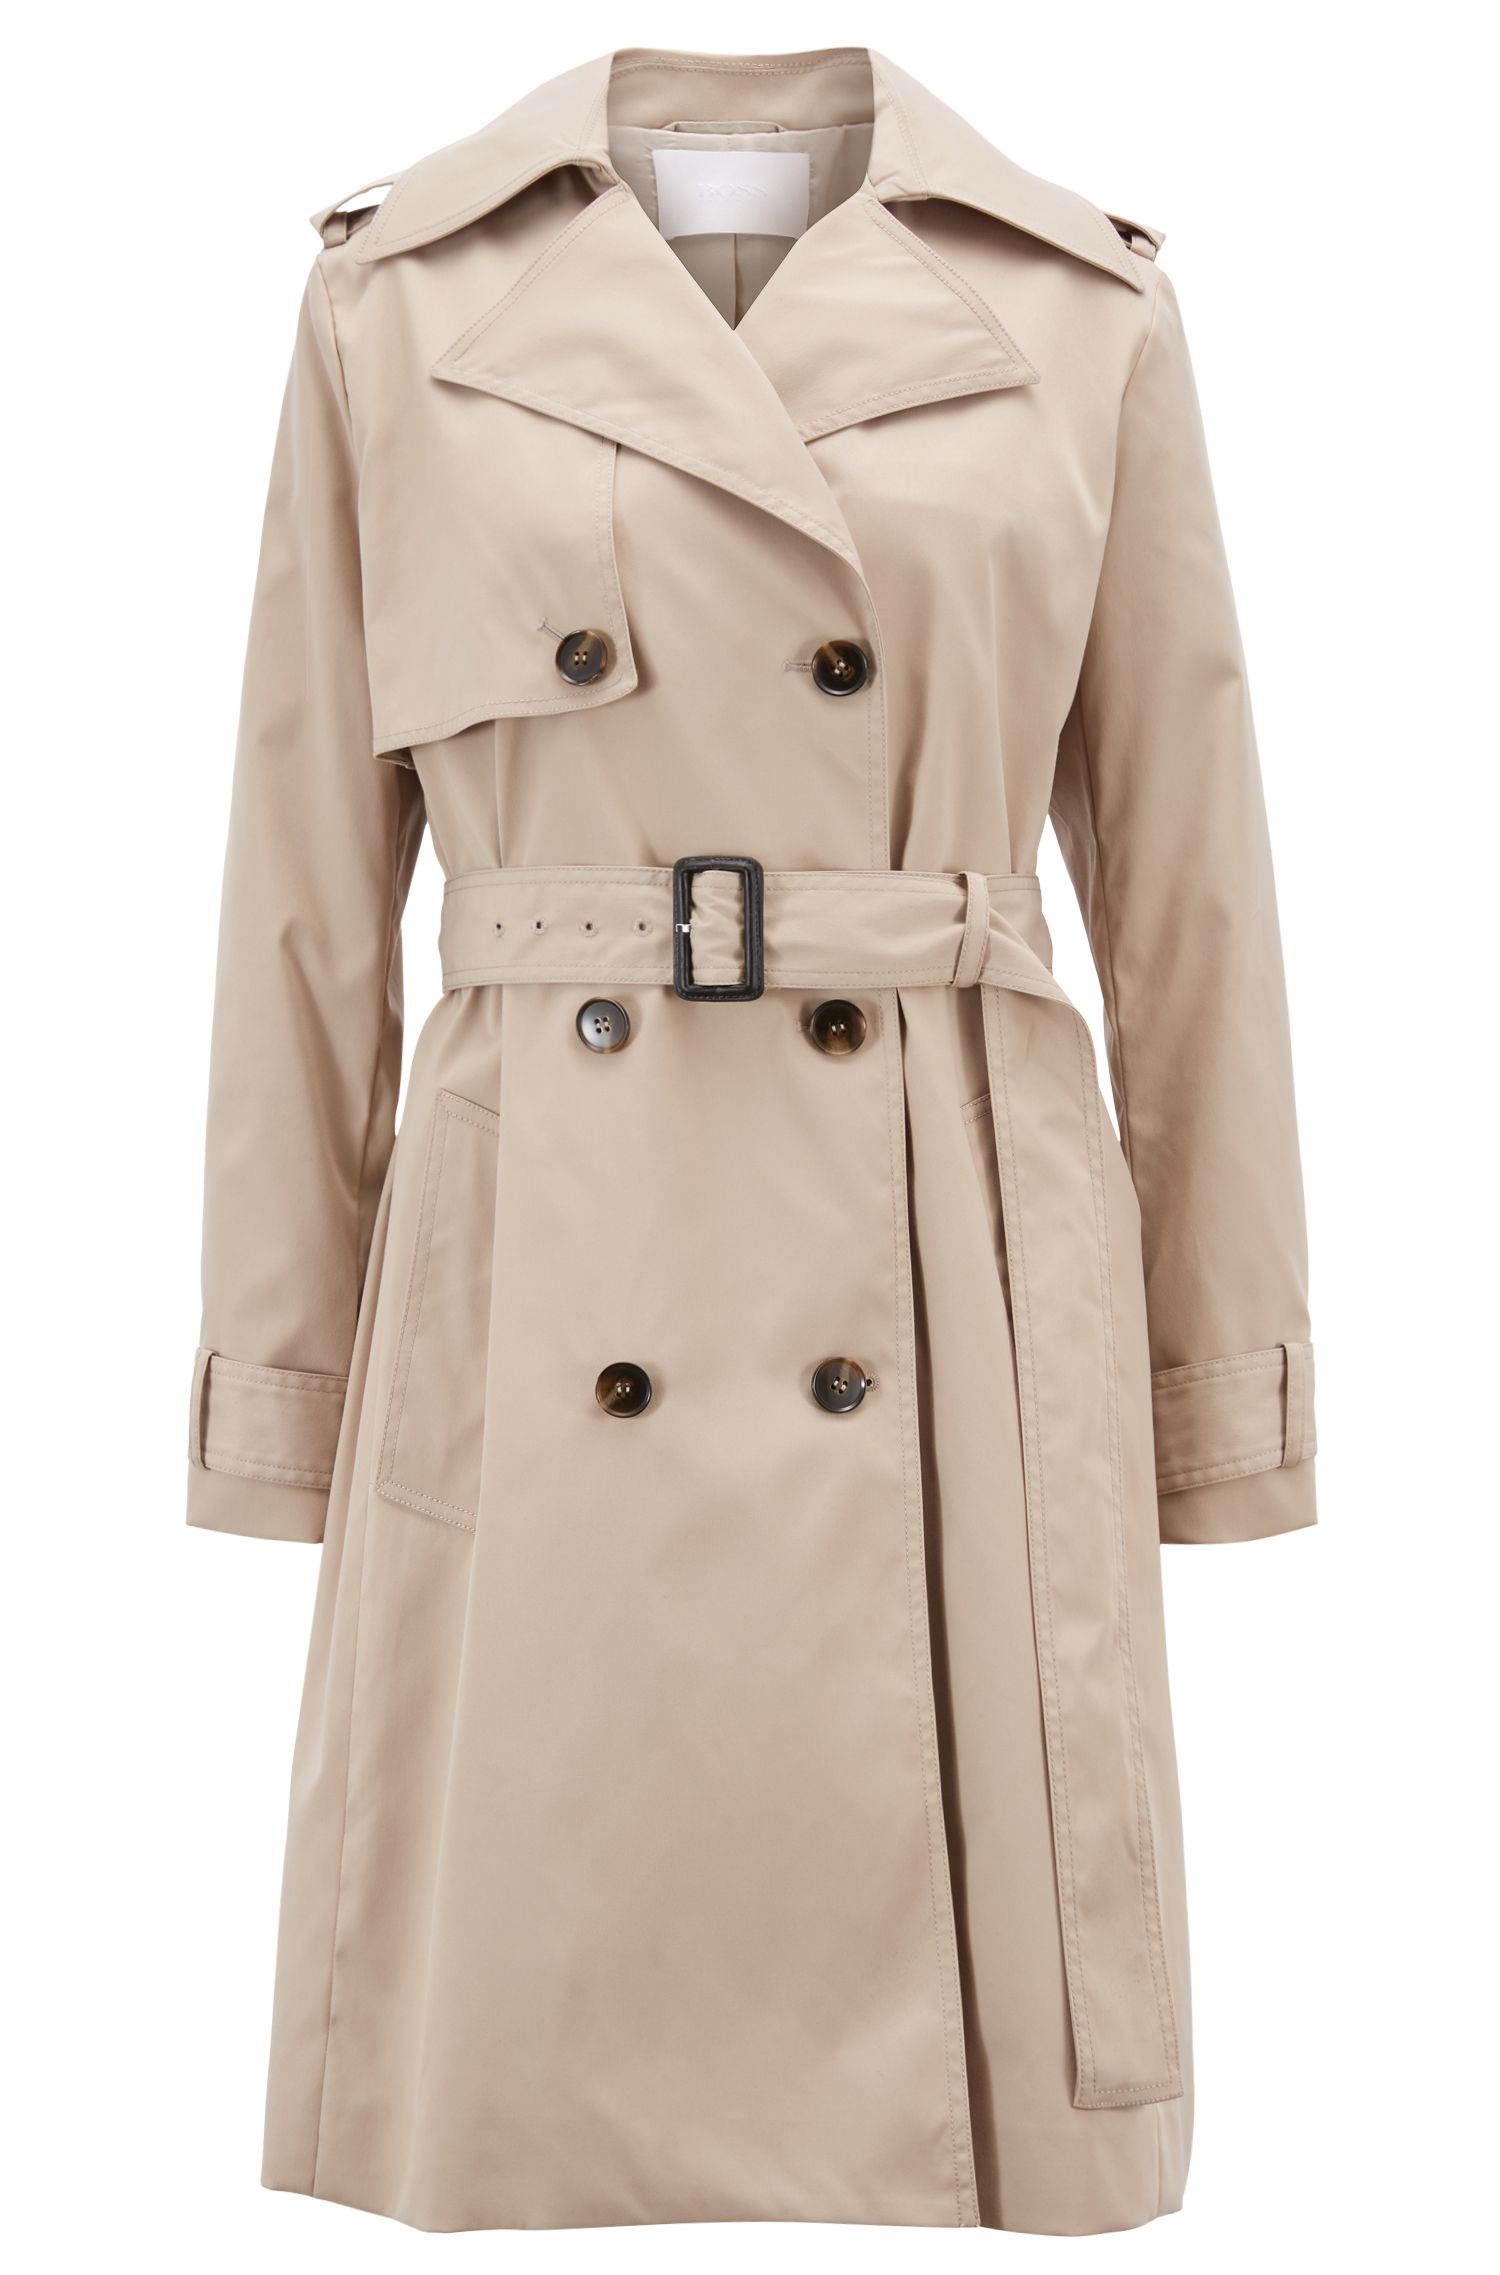 0baa4d038325a Double-Breasted Trench Coat with Oversized Lapels | Endource